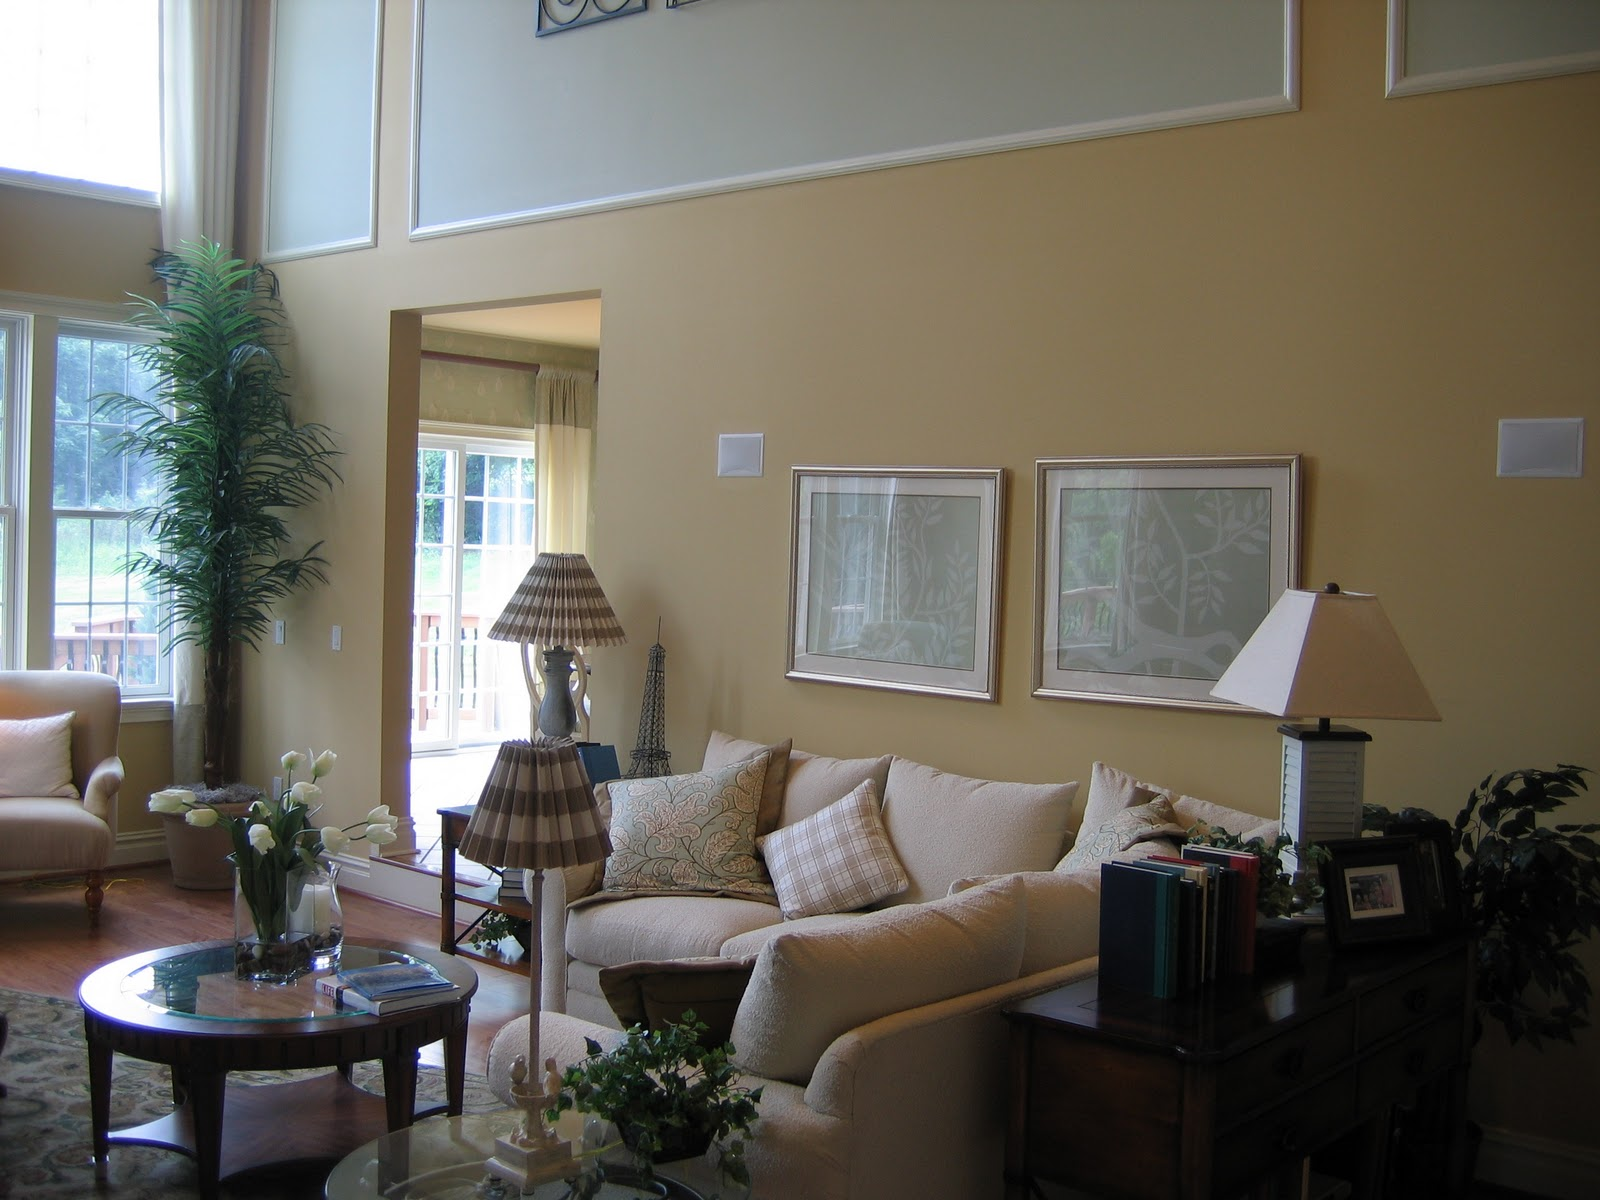 How To Use Bookshelves To Organize Your Family Room